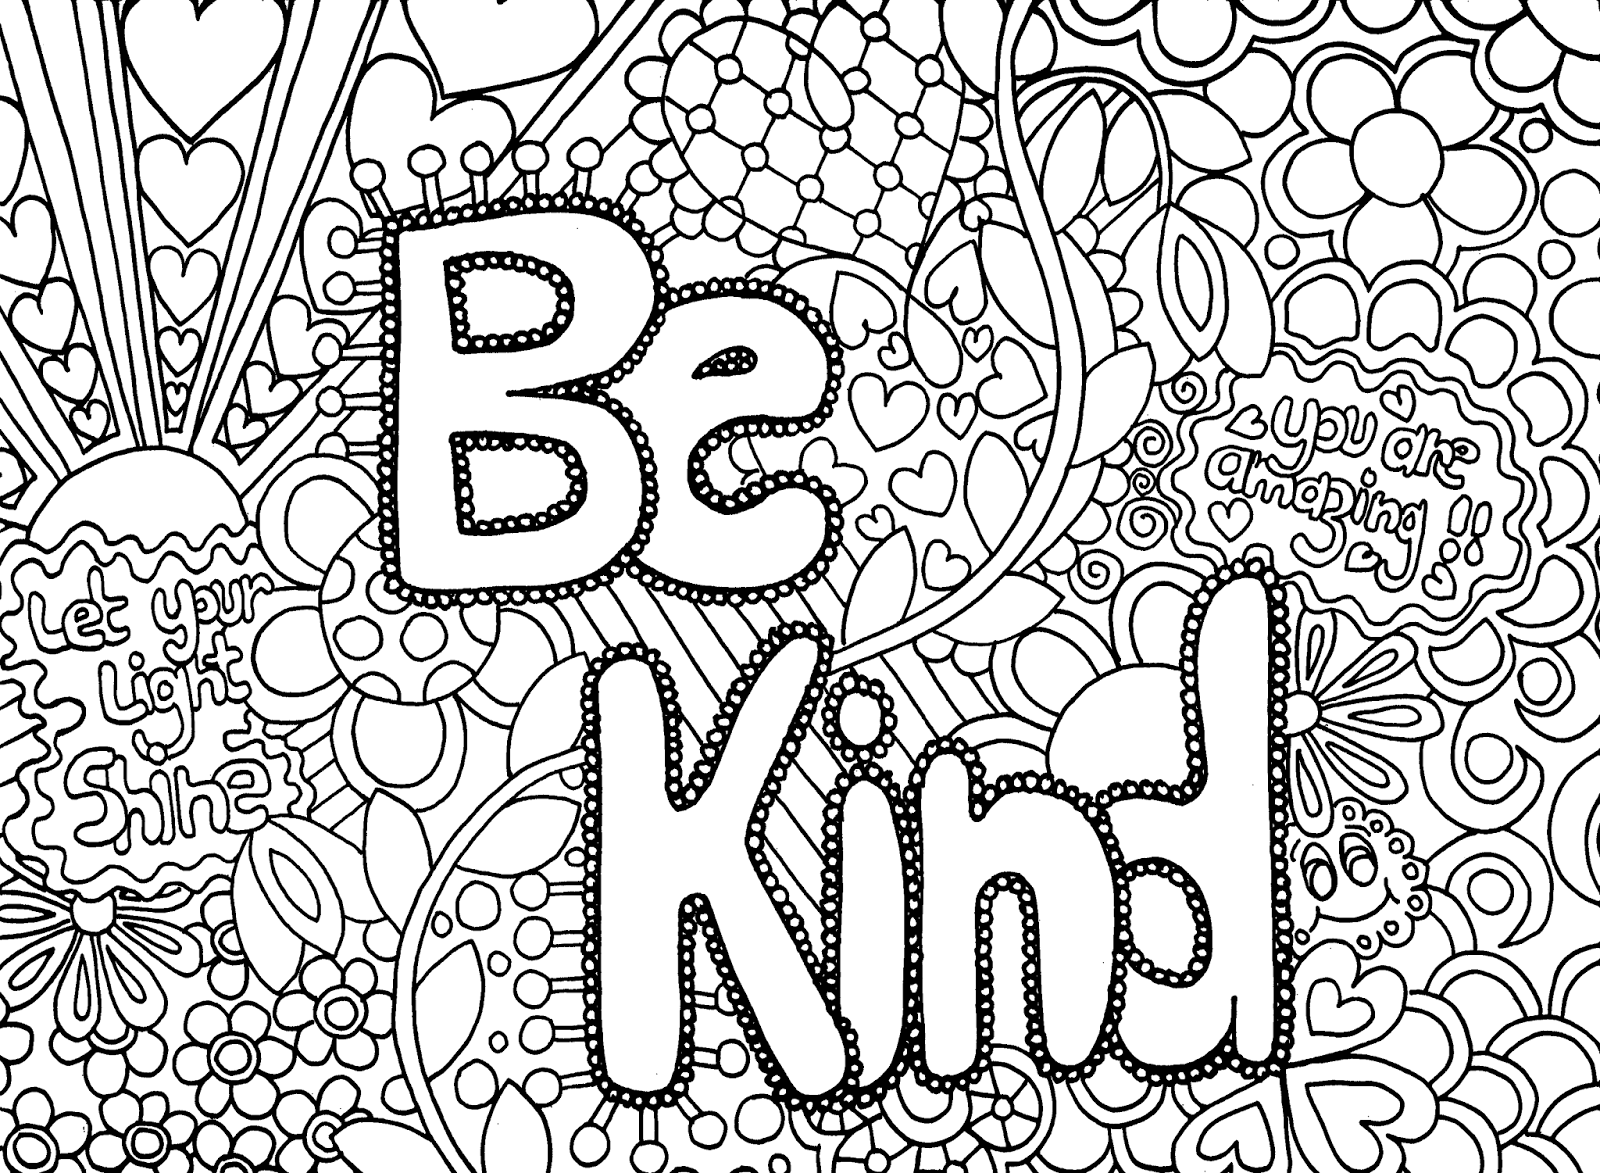 hard coloring pages for adults - Coling Pages